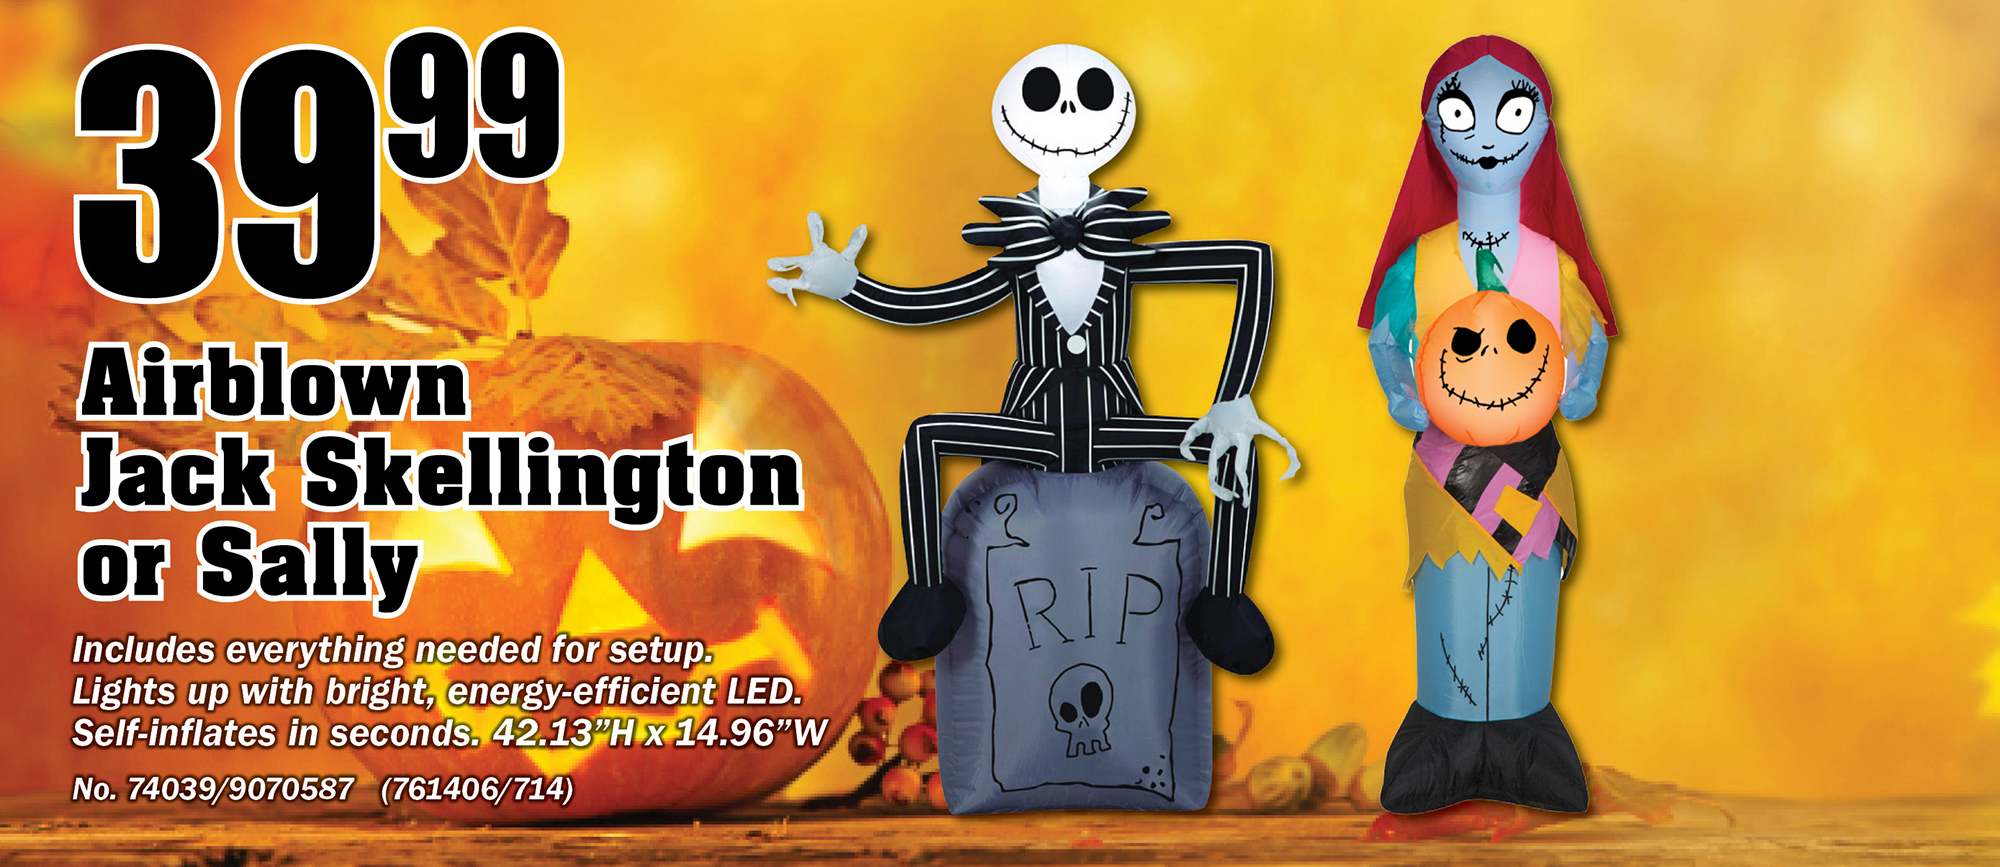 """$39.99   Airblown  Jack Skellington or Sally  Includes everything needed for setup. Lights up with bright, energy-efficient LED. Self-inflates in seconds. 42.13""""H x 14.96""""W No. 74039/9070587   (761406/714)"""